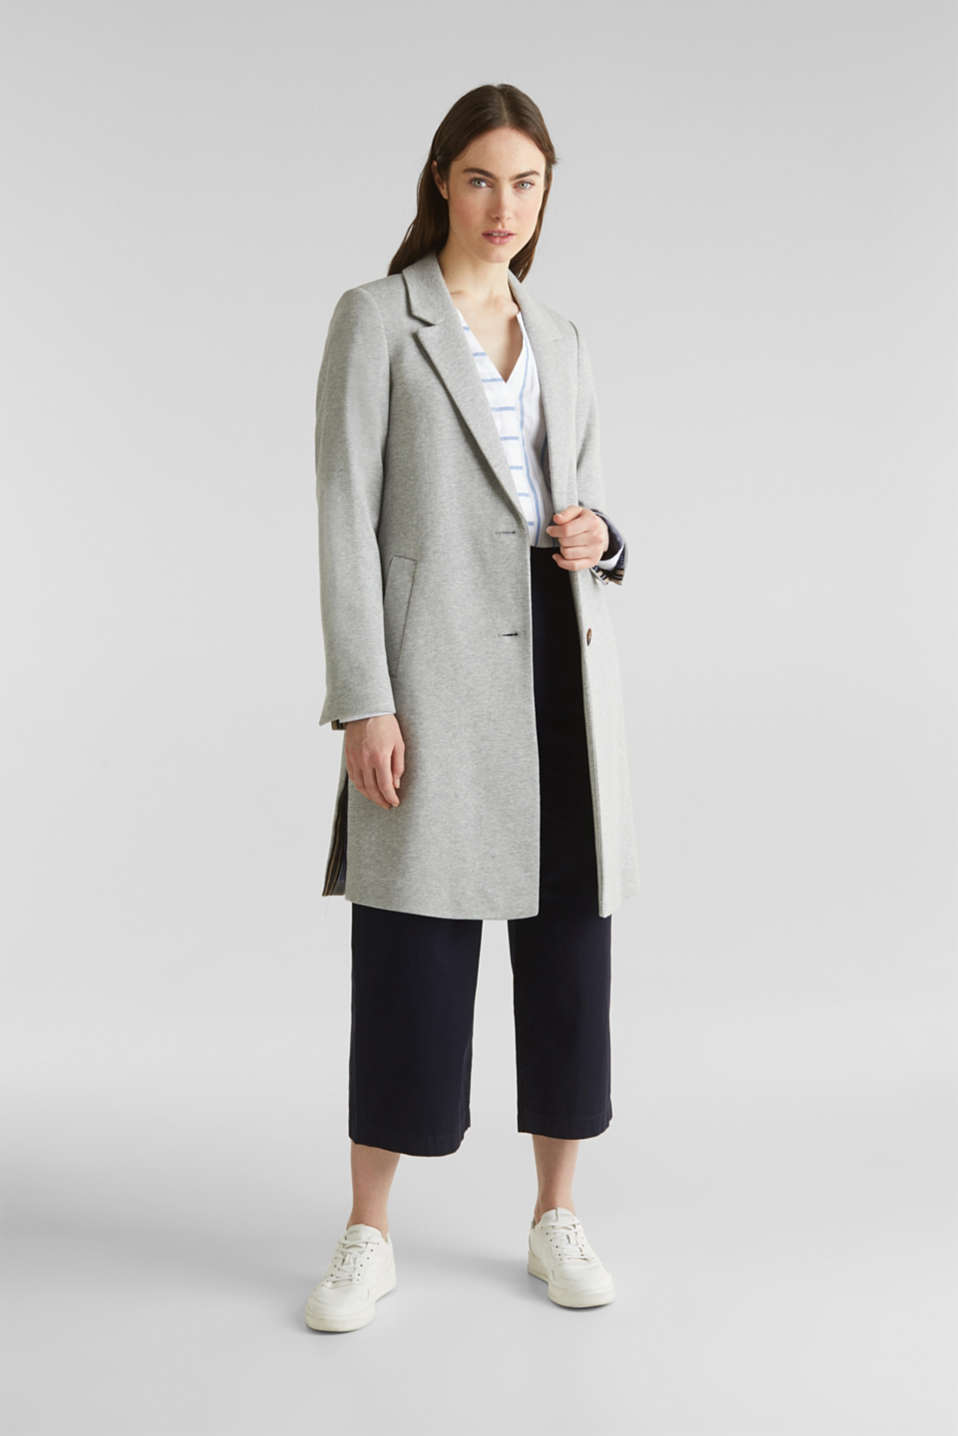 Esprit - Blazer coat made of jersey